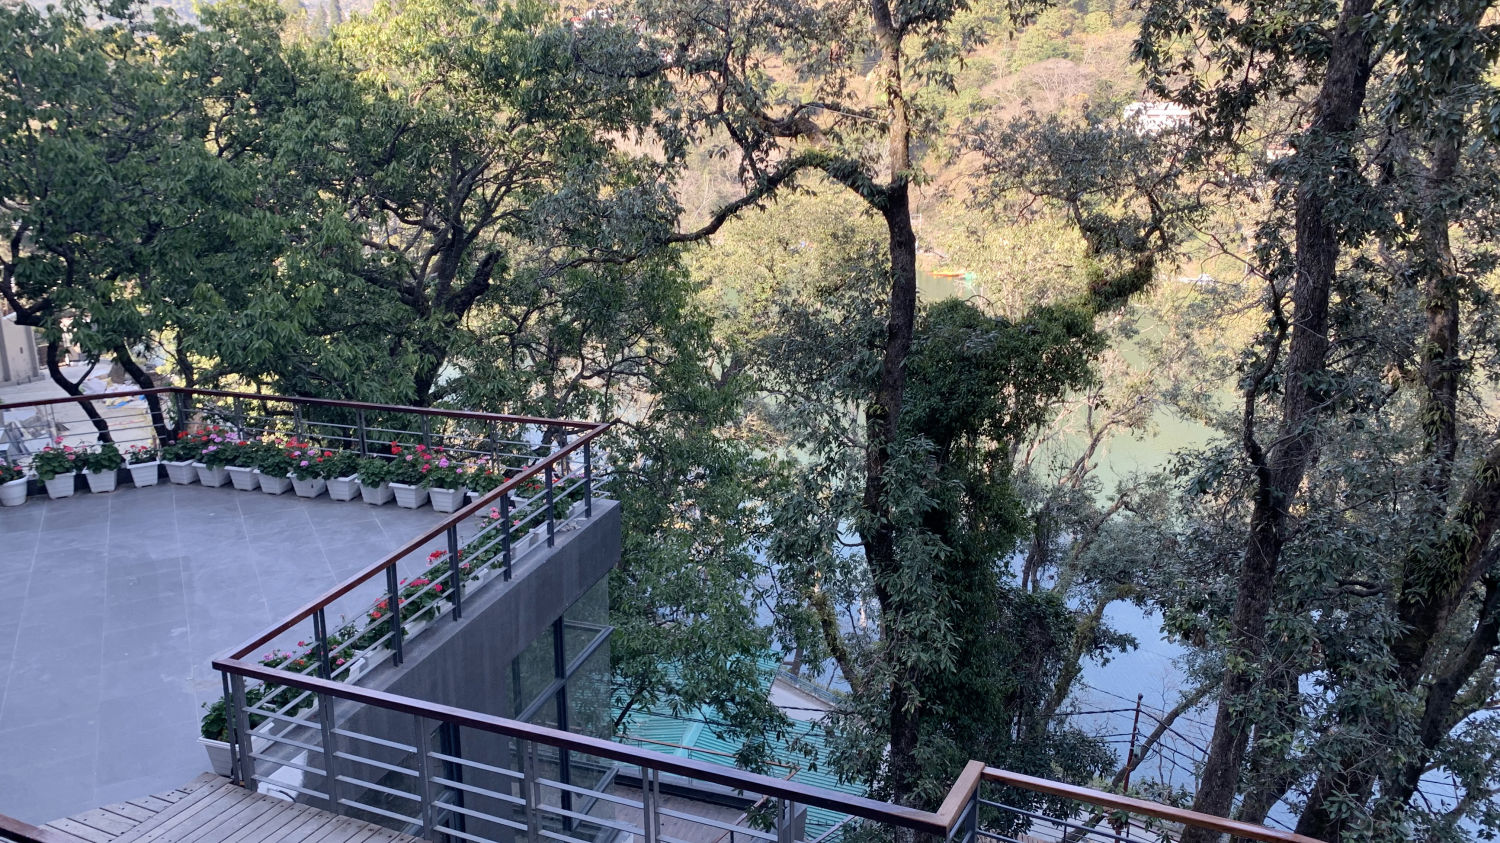 Bhimtal lake view point in Nainital, Hotel near Bhimtal Lake, Rosefinch Sarovar Portico, Bhimtal-10